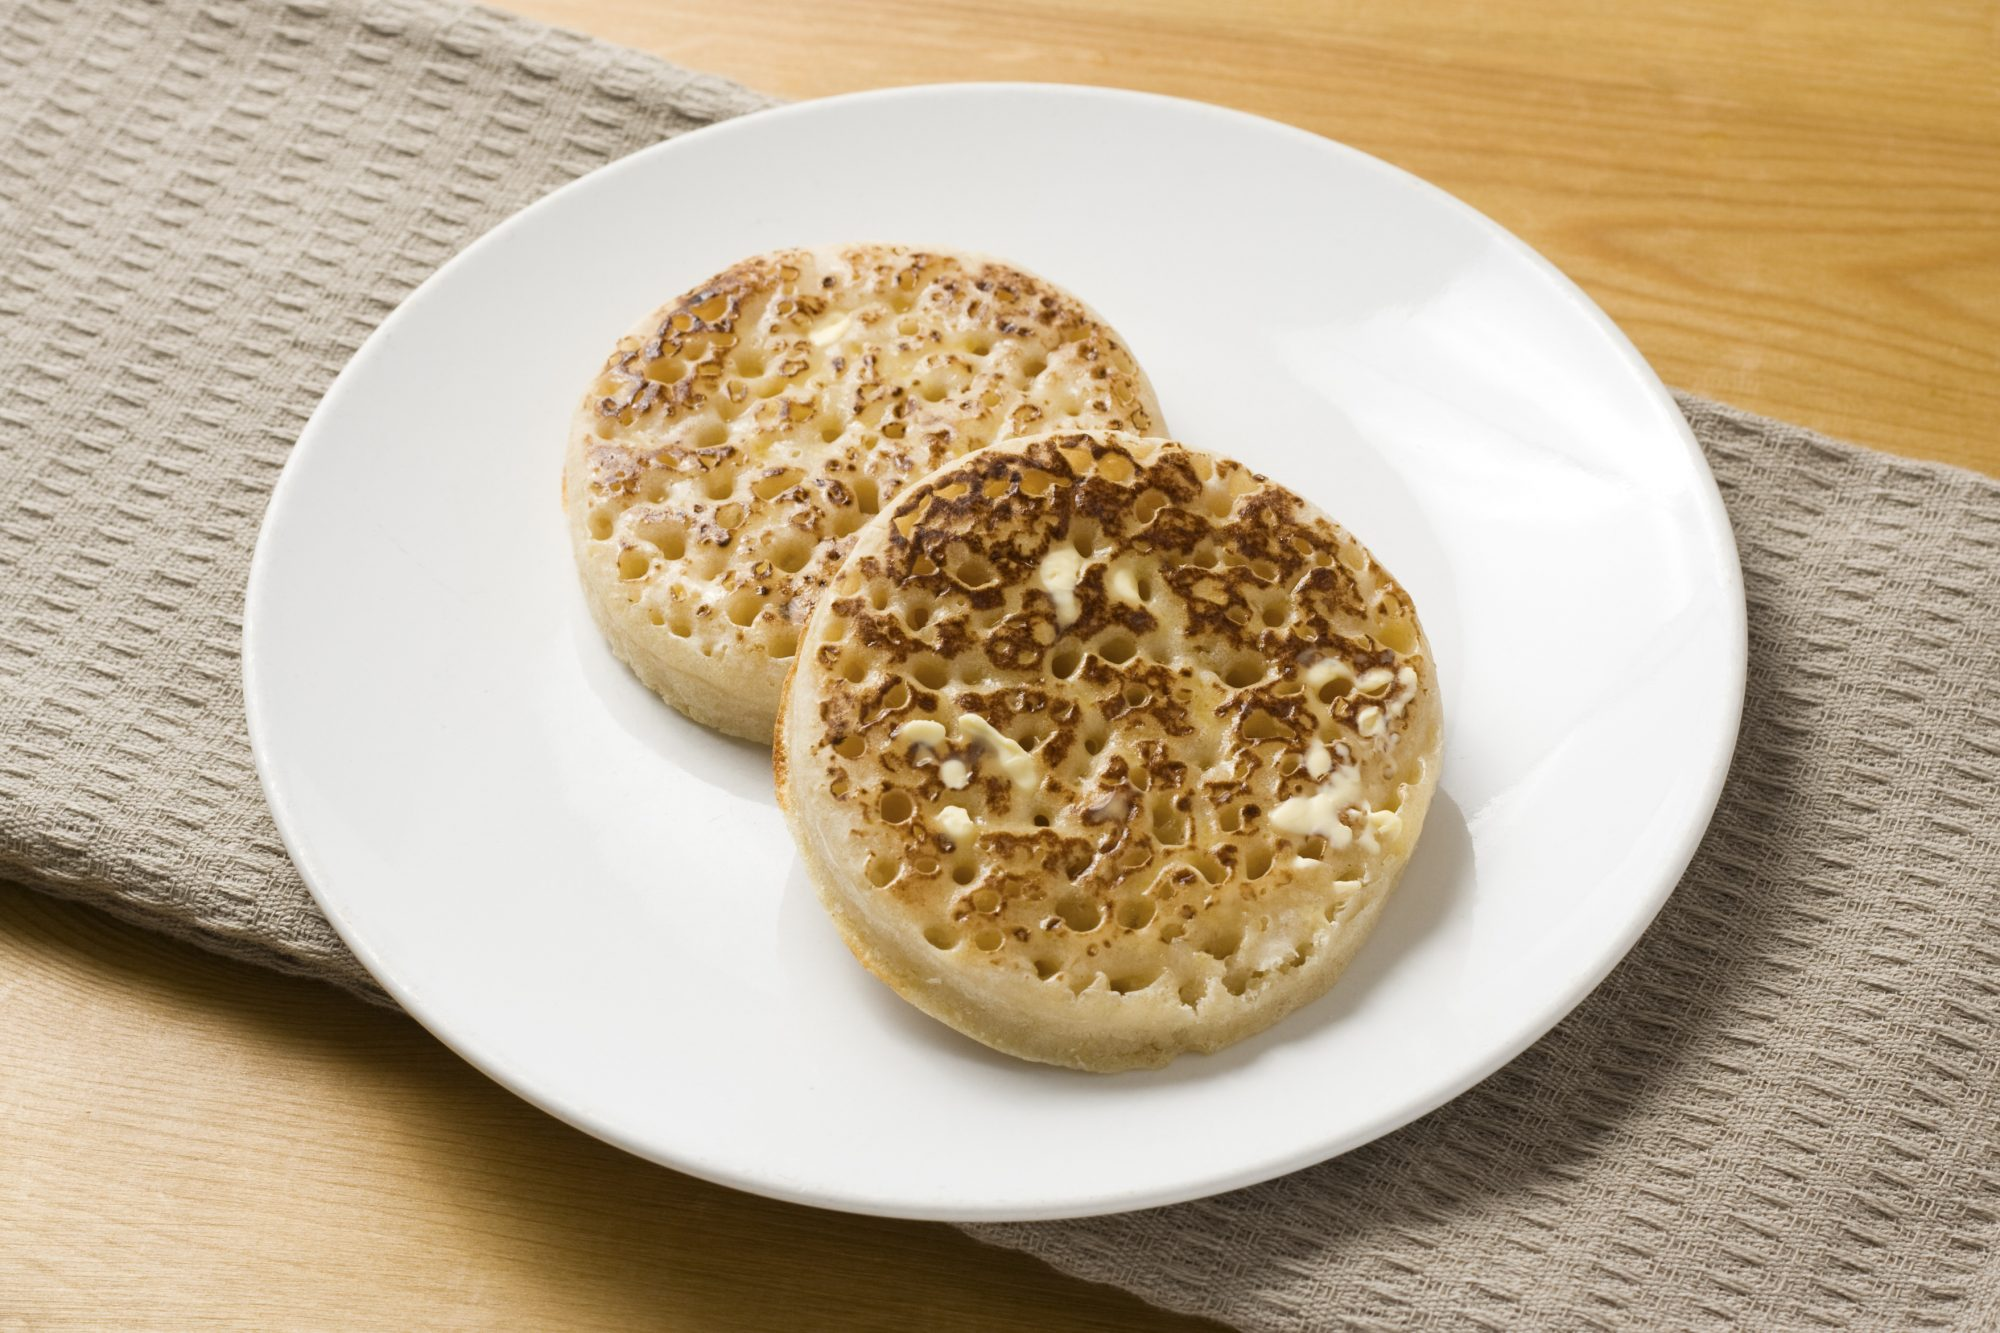 Southern Living Why Crumpets Have Holes